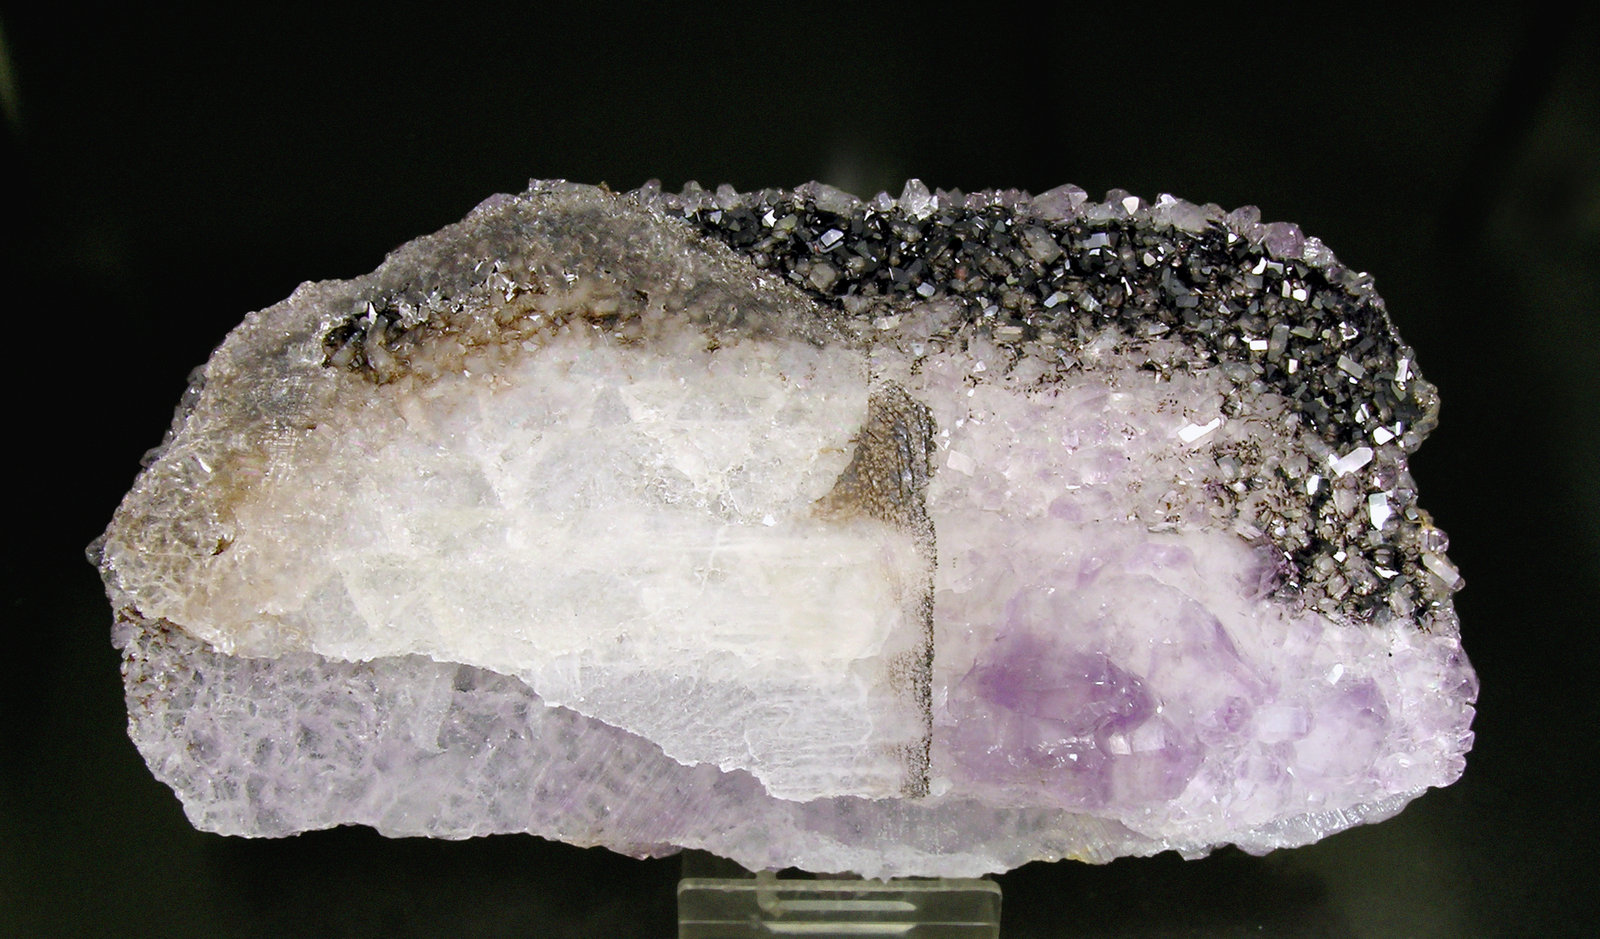 Quartz (Amethyst) after Calcite with Hematite